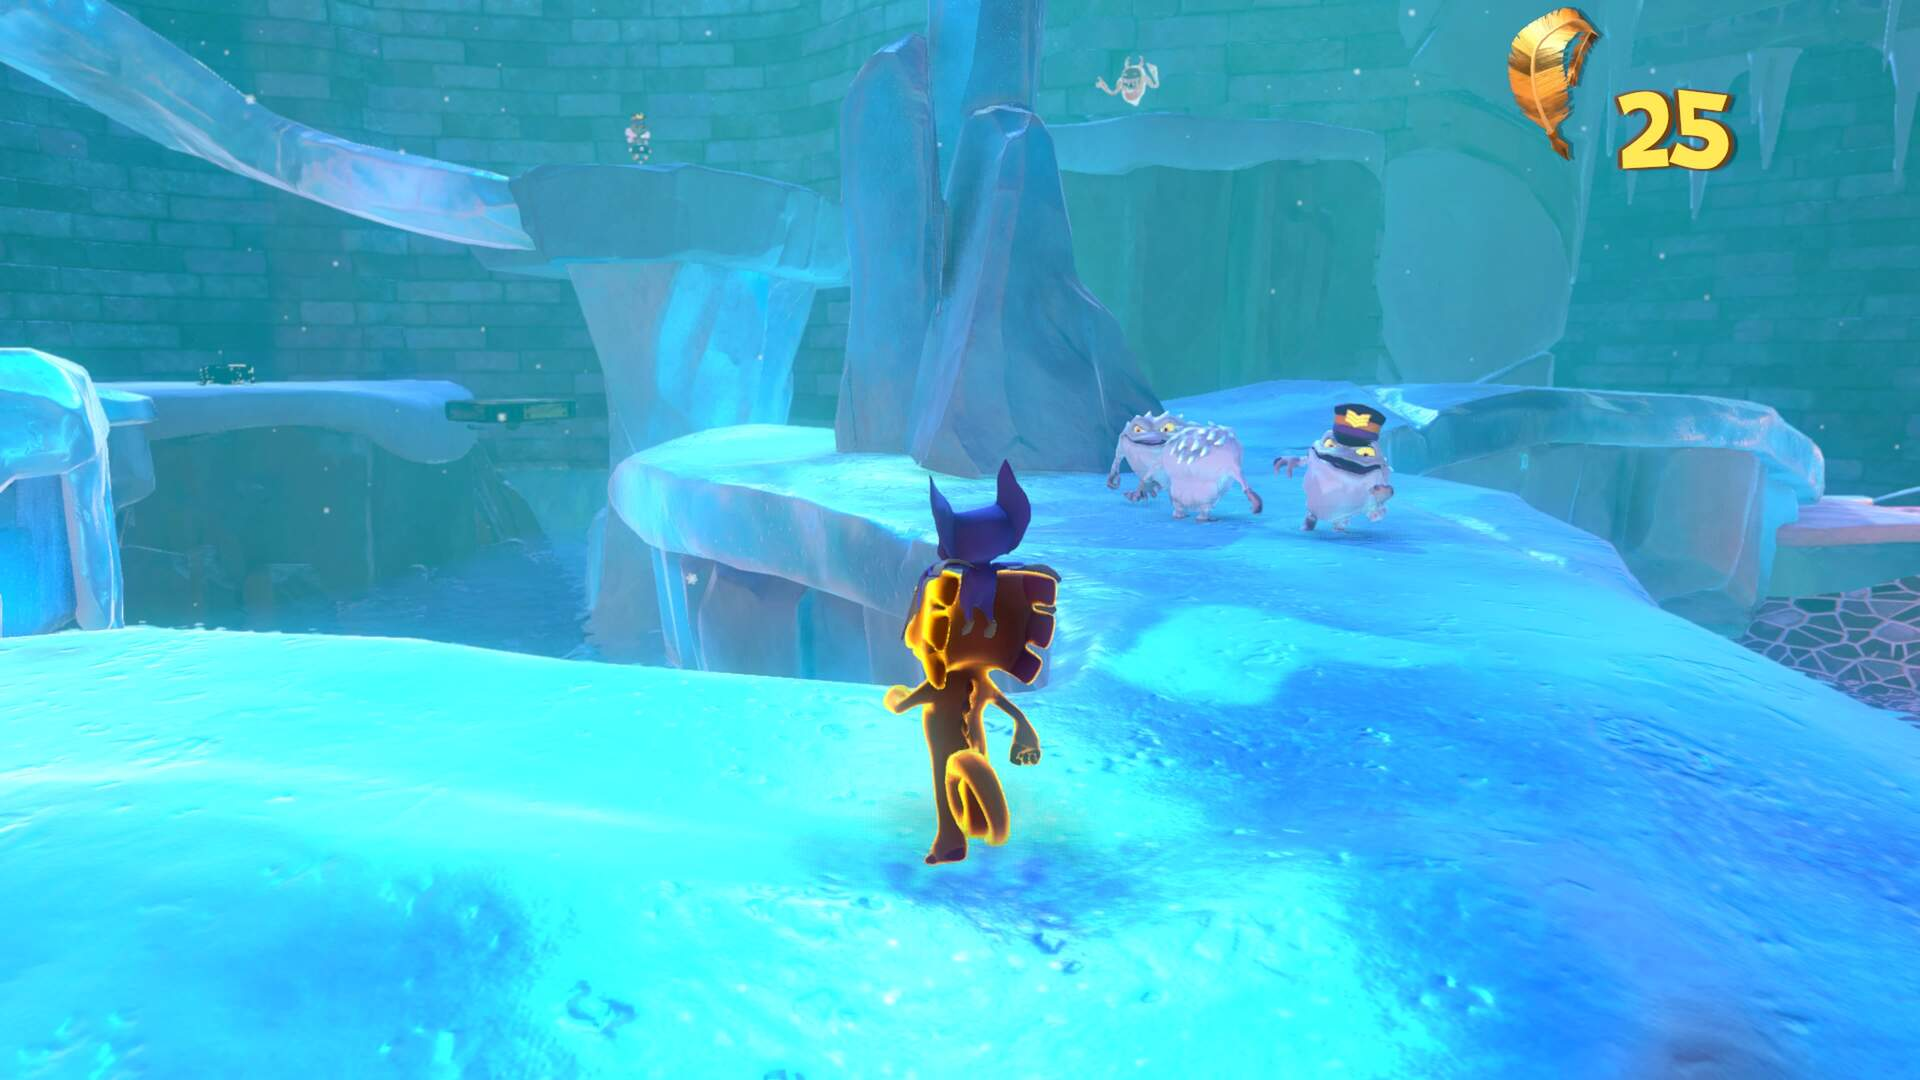 Yooka Laylee Glitterglaze Glacier - Pagie Locations, Snowmen, Beat Brrreeze Blok World 2 Boss, Hot Tub Puzzle, Butterfly Heart, Power Extender, Play Coin, Mollycool